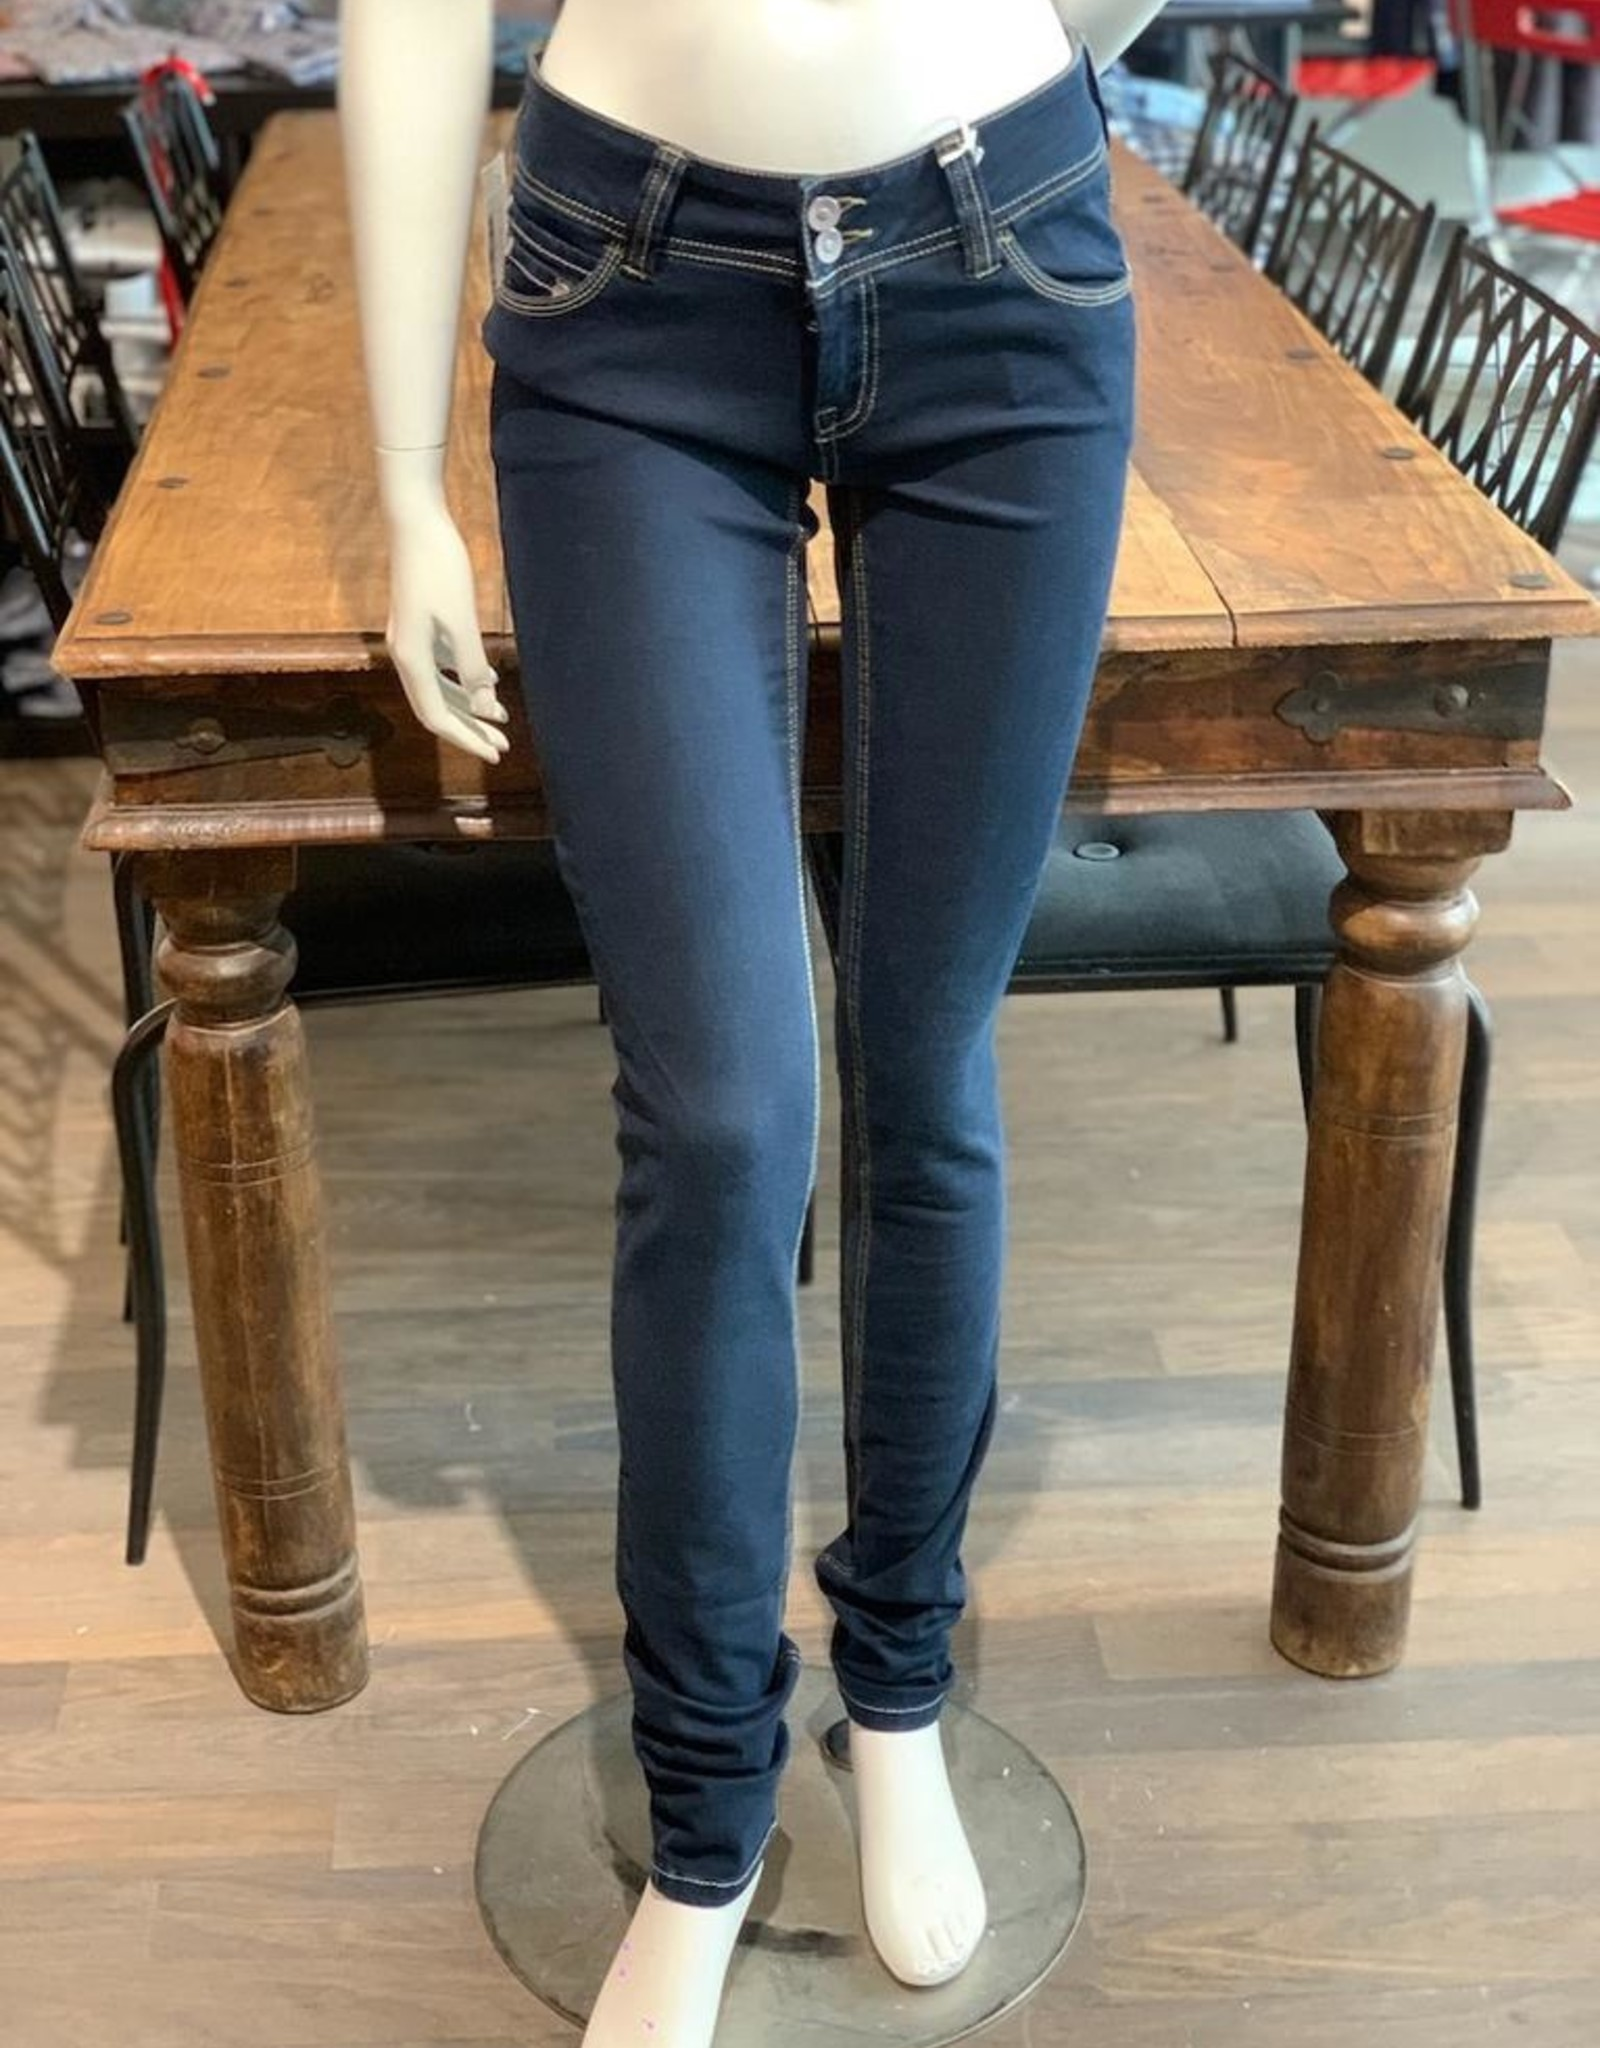 Richy Richy D-Jeans Suzy Superslimm NOS 3RV, FW:15cm, 38inches